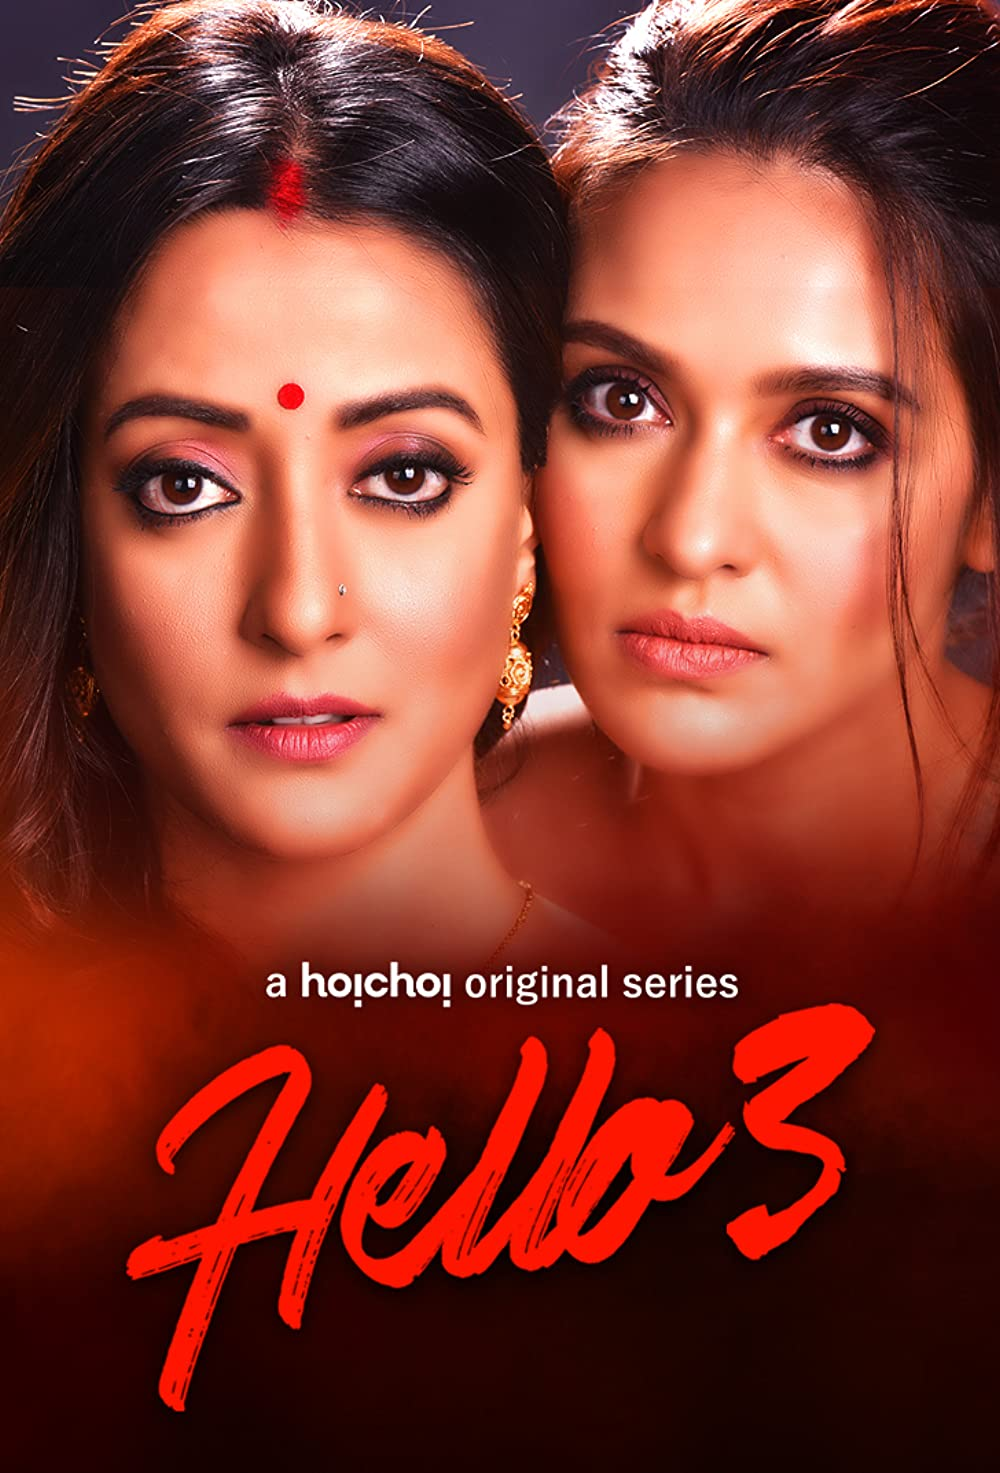 Hello 3 2021 S03 Ep 7 to 12 Hoichoi Originals Bengali Web Series 720p HDRip 800MB Download